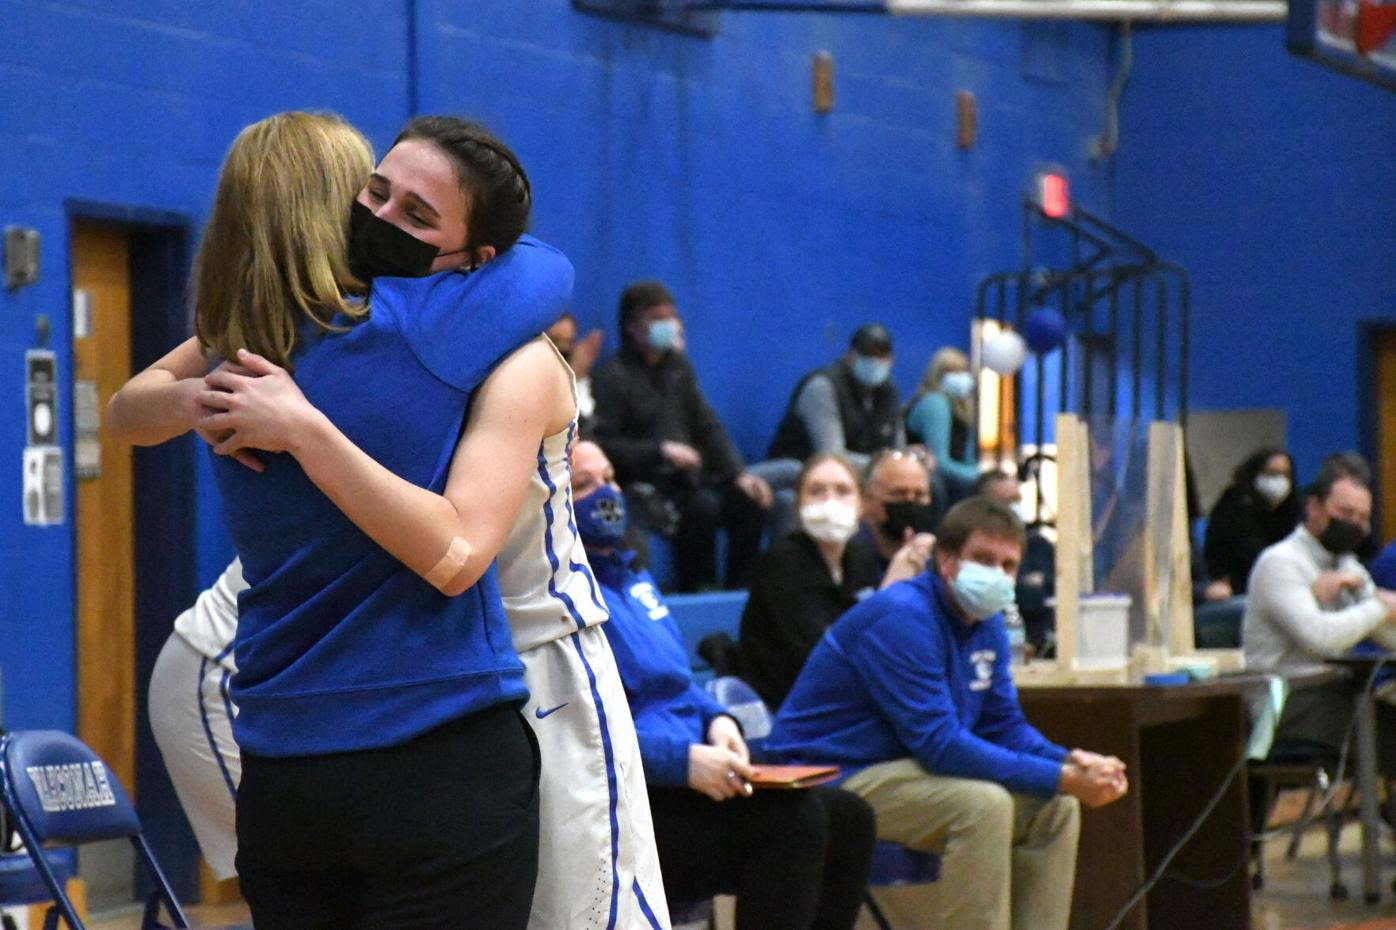 Last Girls Basketball game played at Wahconah Regional High School